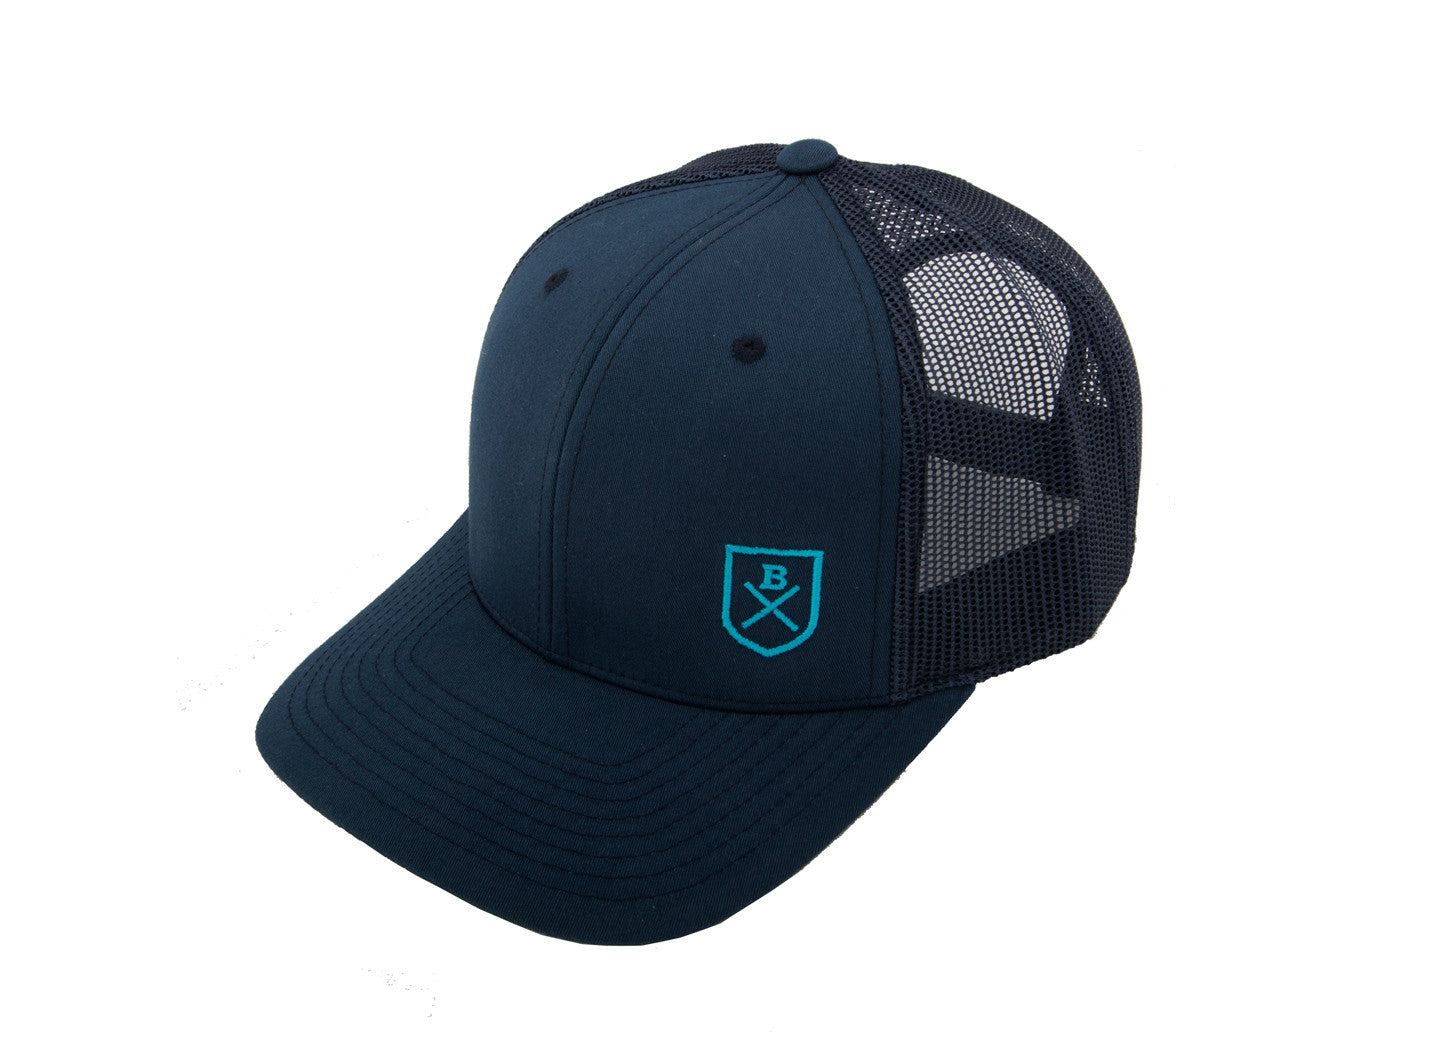 ... Bluesmiths Classic Trucker Cap - Blue with Shield Logo ... 611a6cf1d64